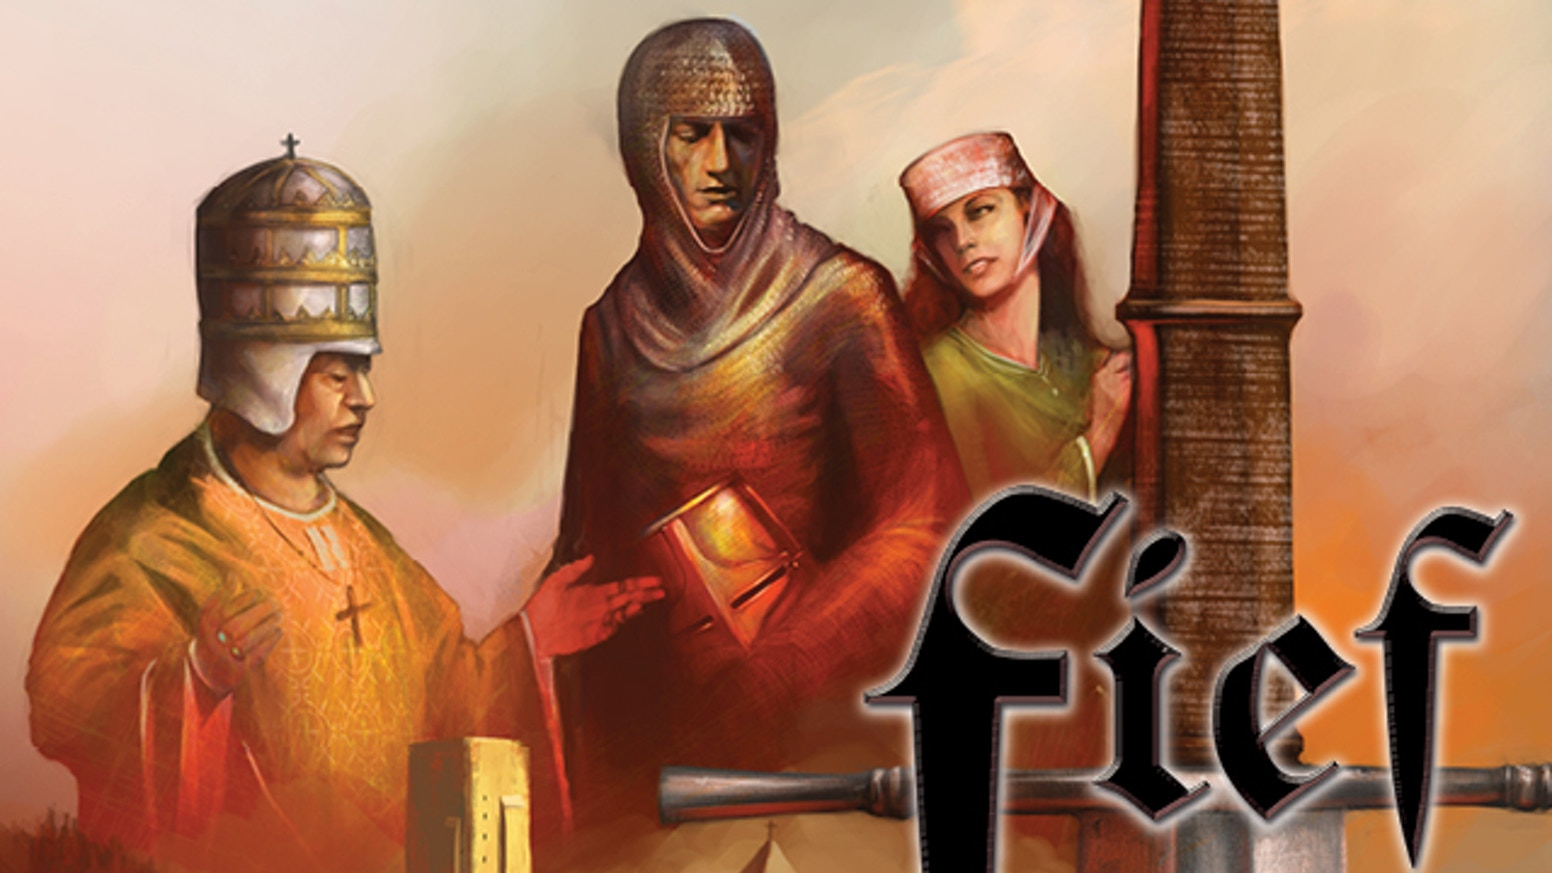 Fief is a game of dynastic ambition, where players assume the roles of nobles in the 15th century Kingdom of France.